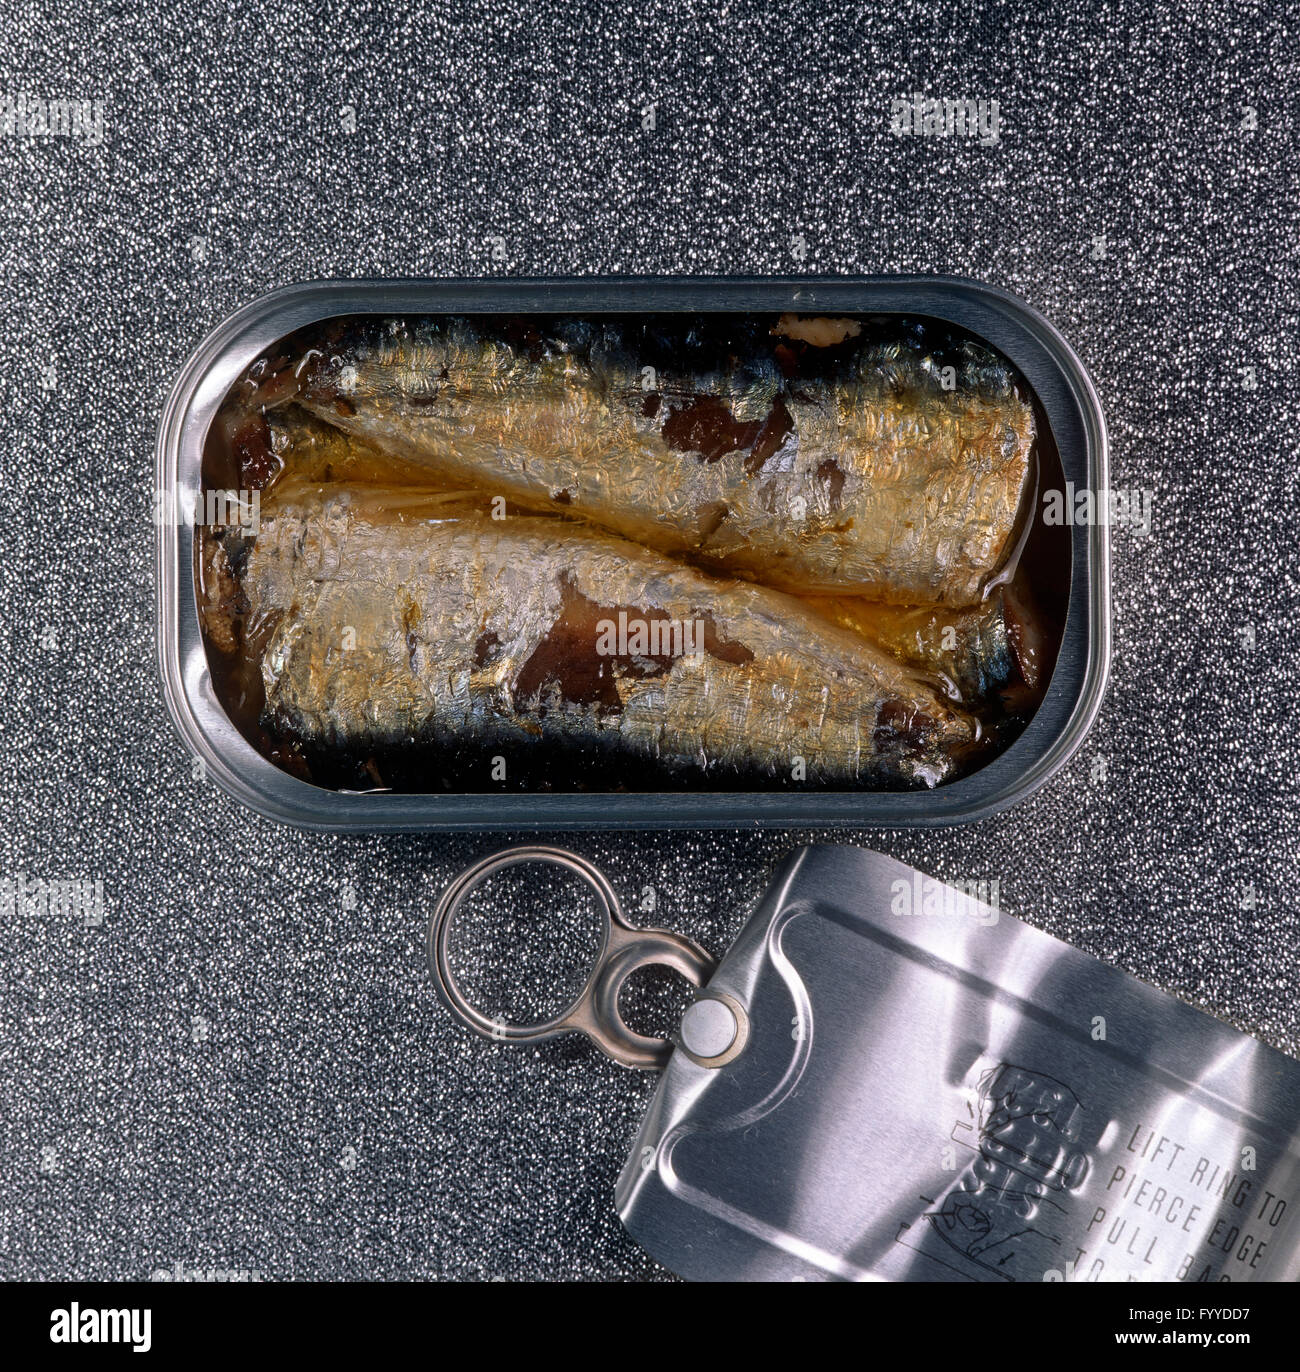 Fish in a tin, inside. - Stock Image